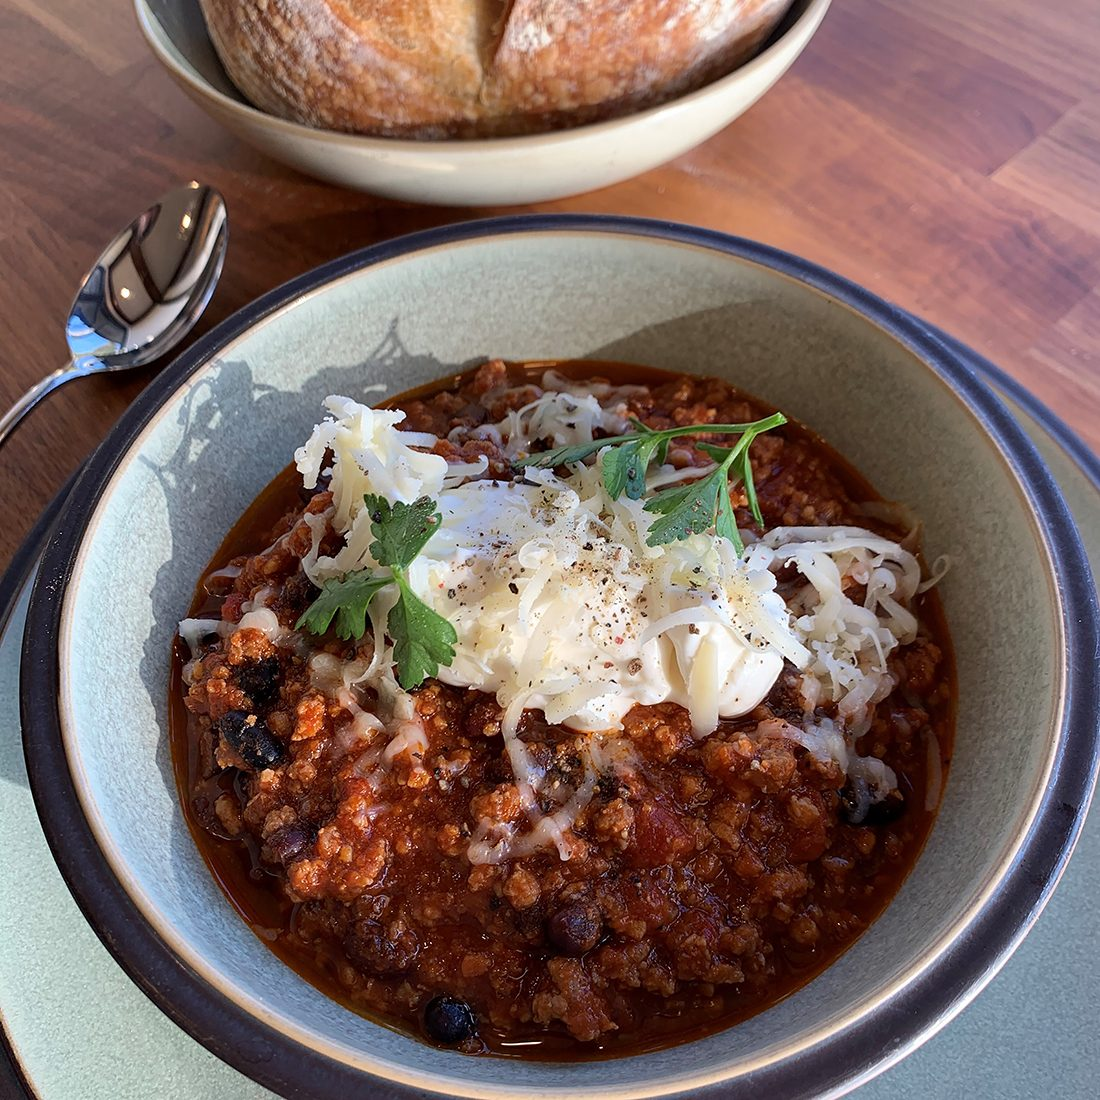 Ned's famous beef pork Tabasco Chipotle and black bean chili recipe